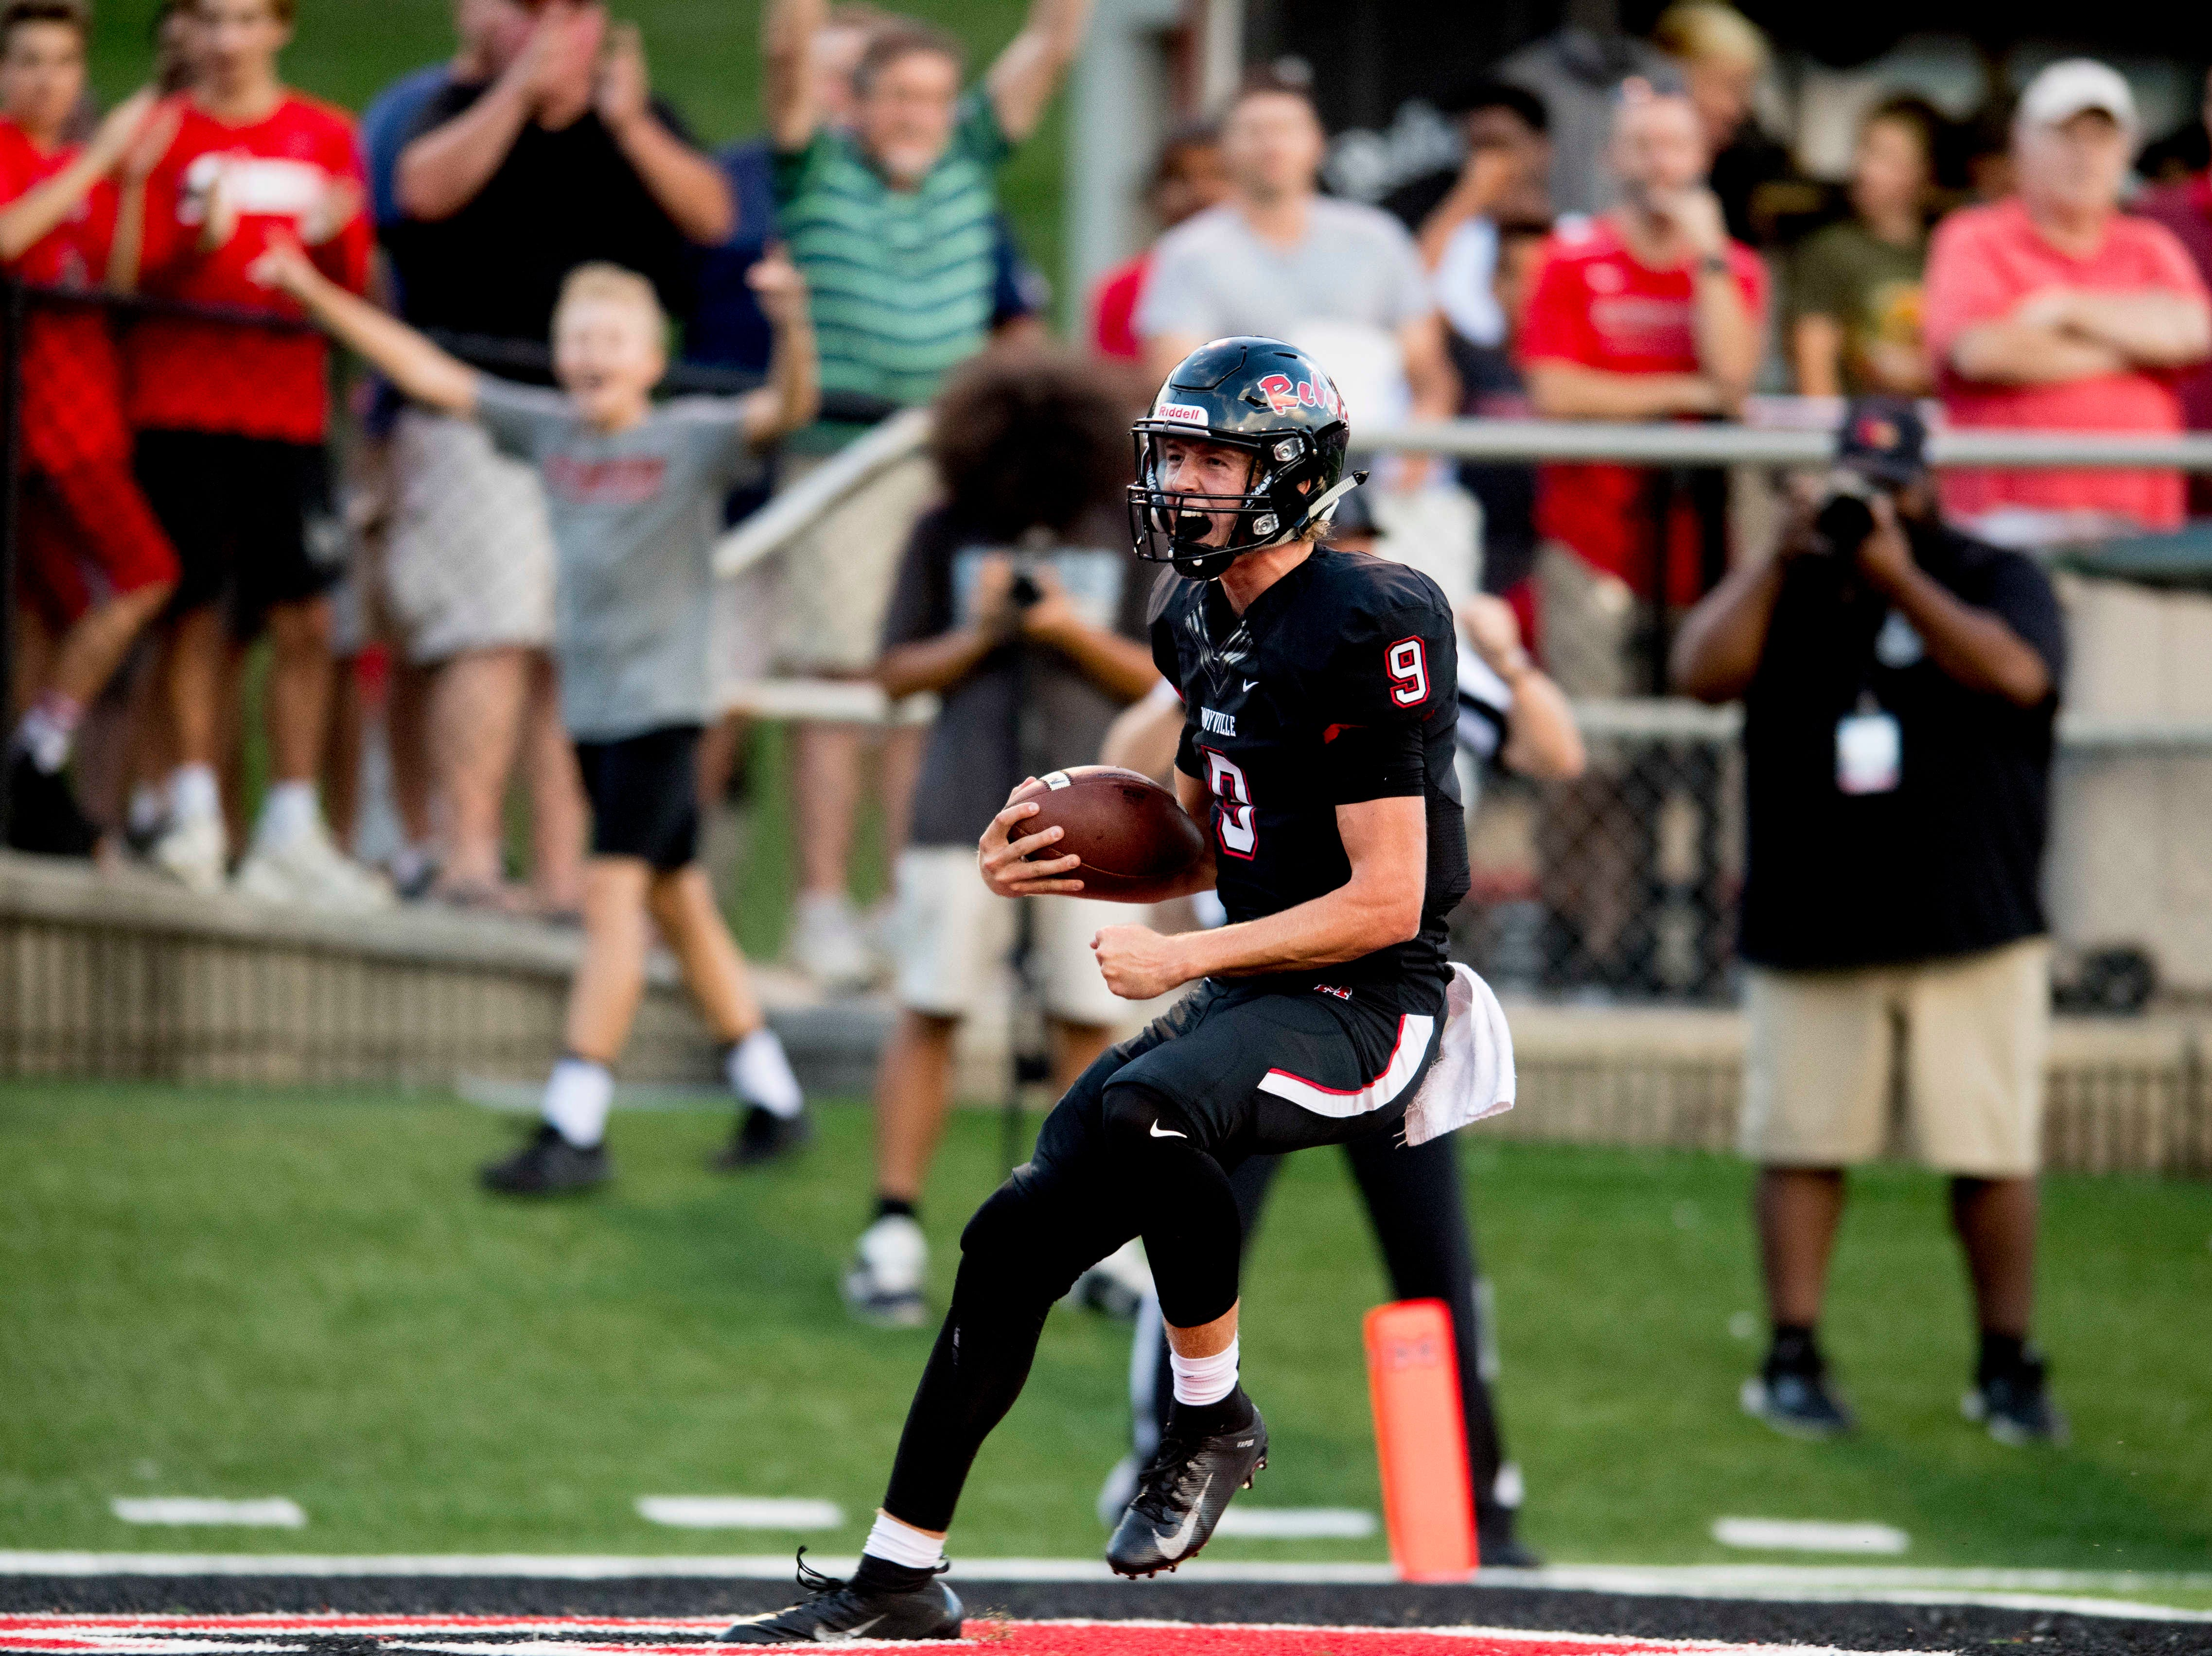 Maryville's Cade Chambers (9) runs into the end zone for a touchdown during a football game between Maryville and Oakland at Maryville High School in Maryville, Tennessee on Friday, August 24, 2018.